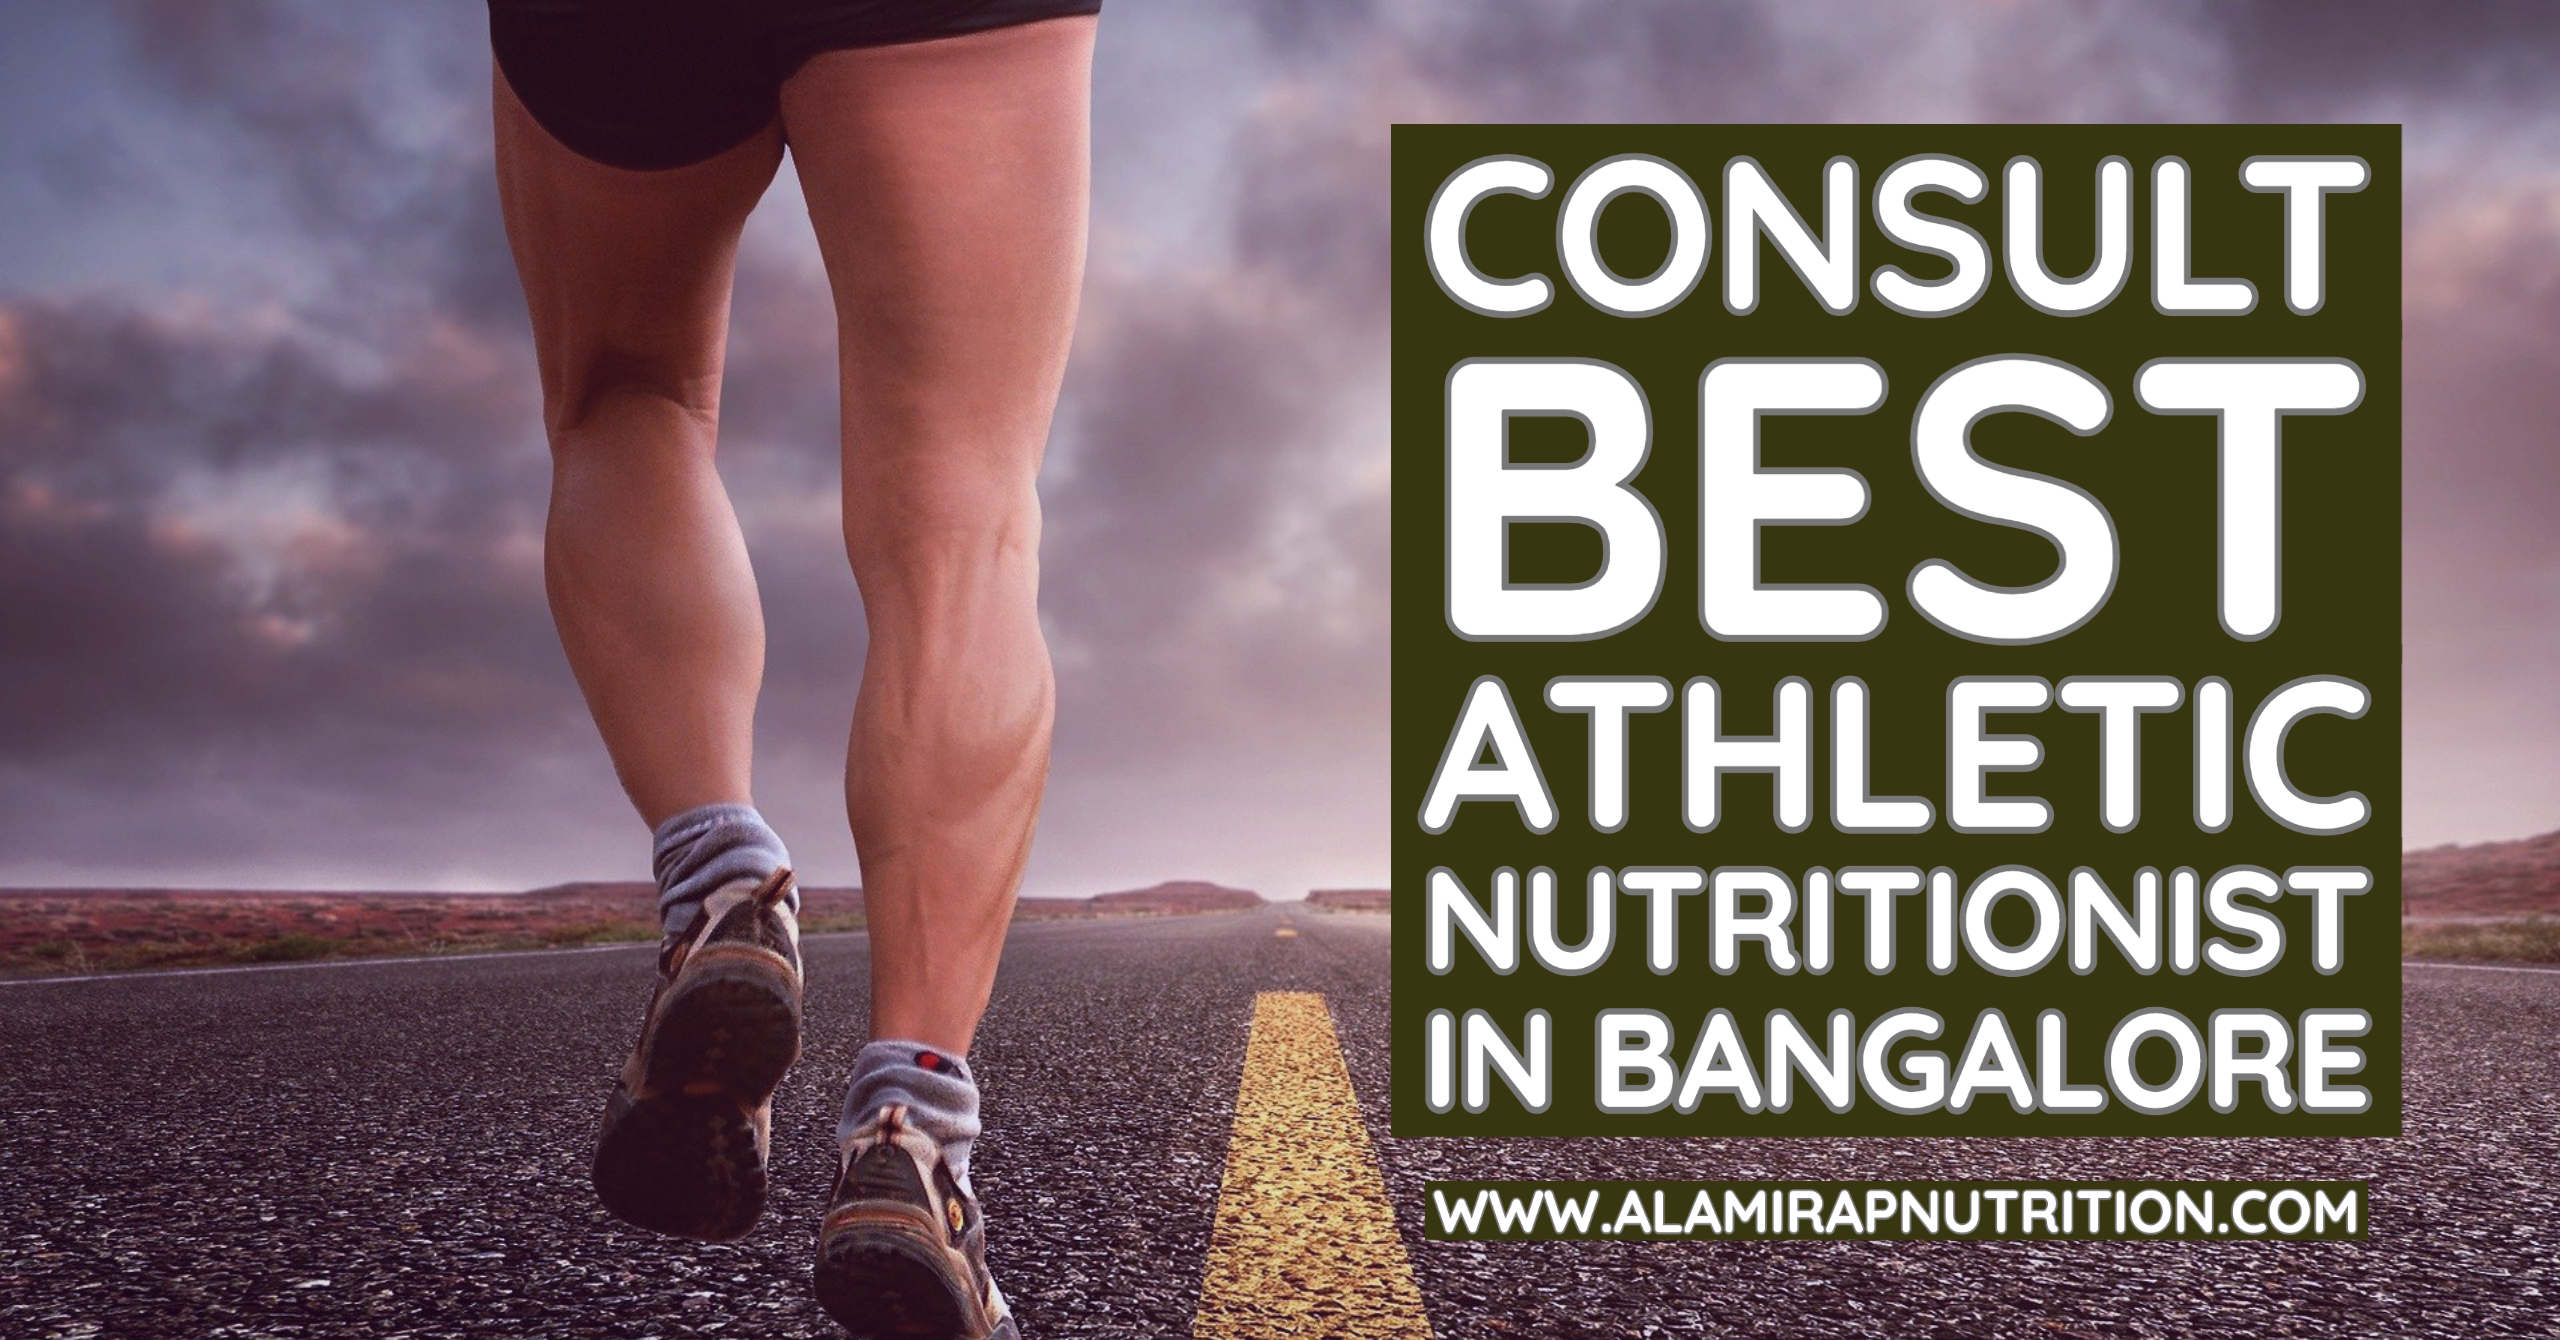 athletic nutritionist